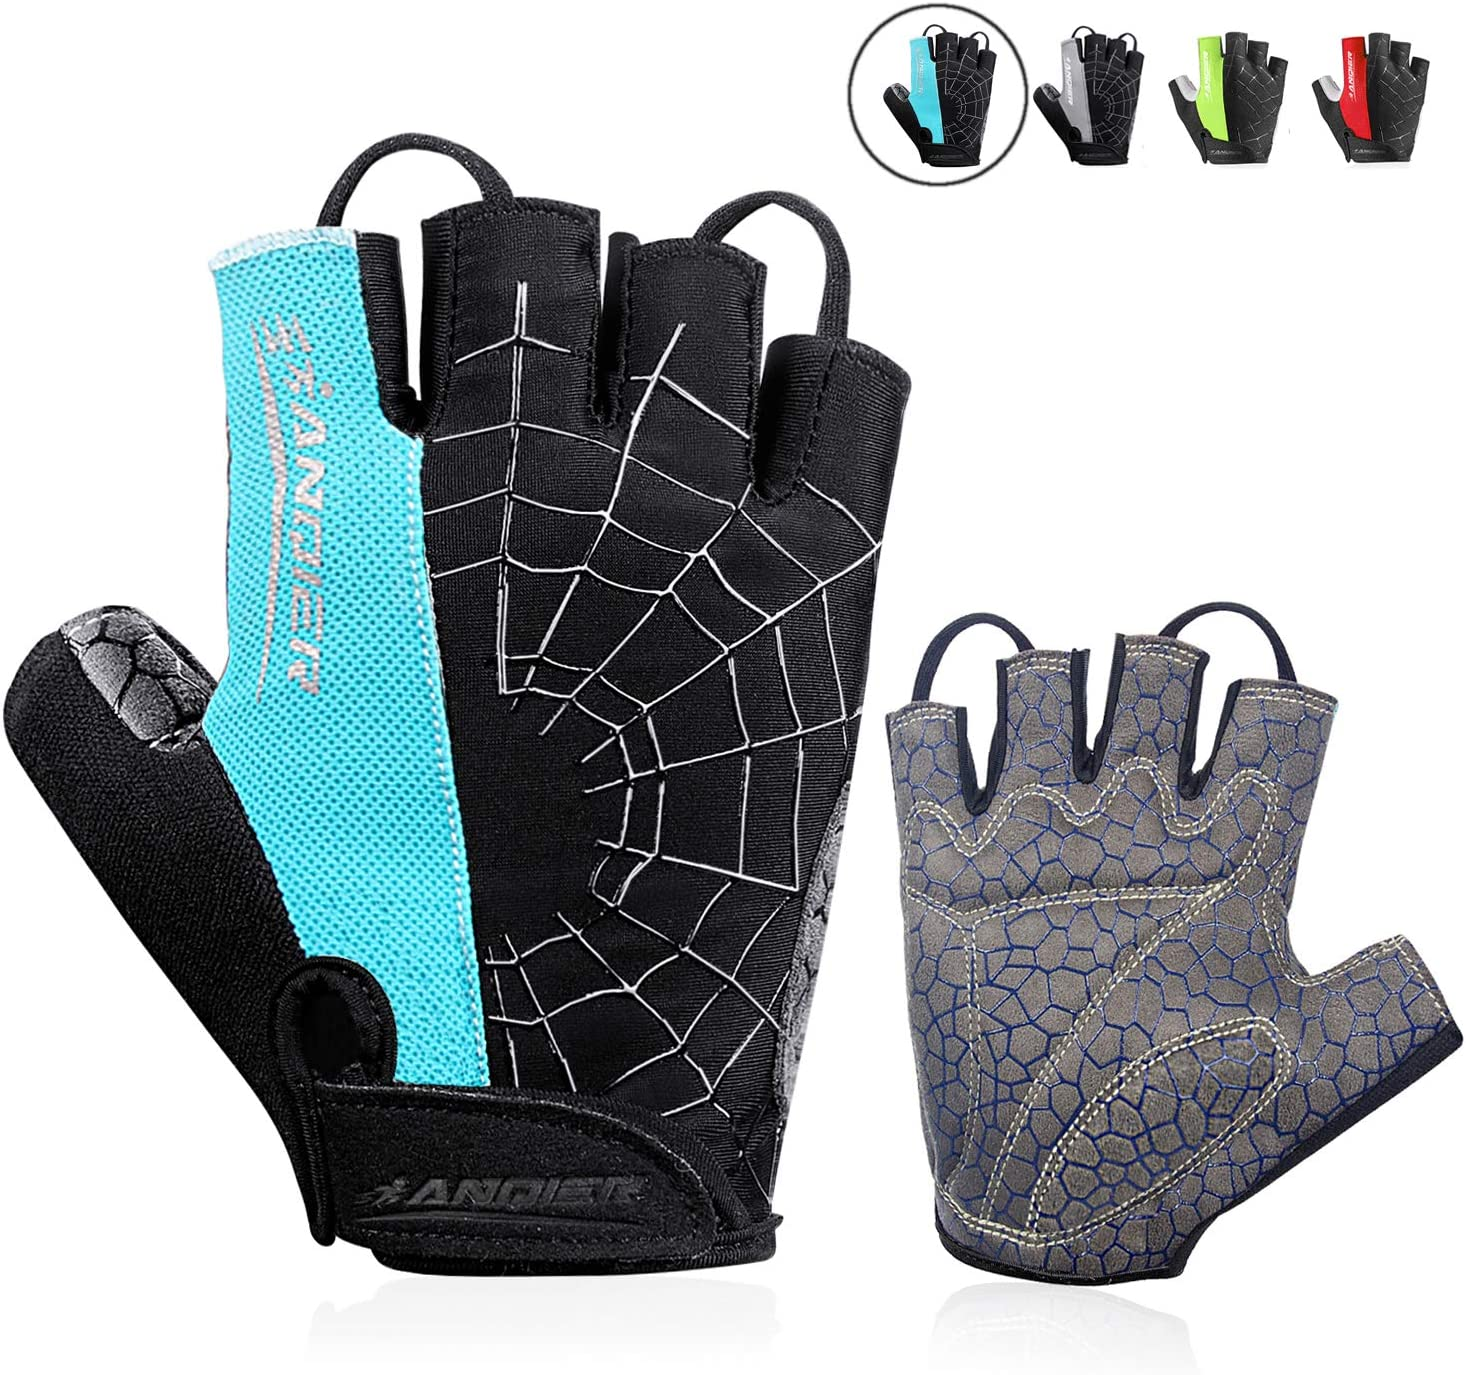 WITERY Cycling Gloves Mountain Bike Gloves Anti Slip Half Finger Road Bicycle Gloves SBR Shock-Absorbing Gel Pad Breathable Workout Glove for Men and Women